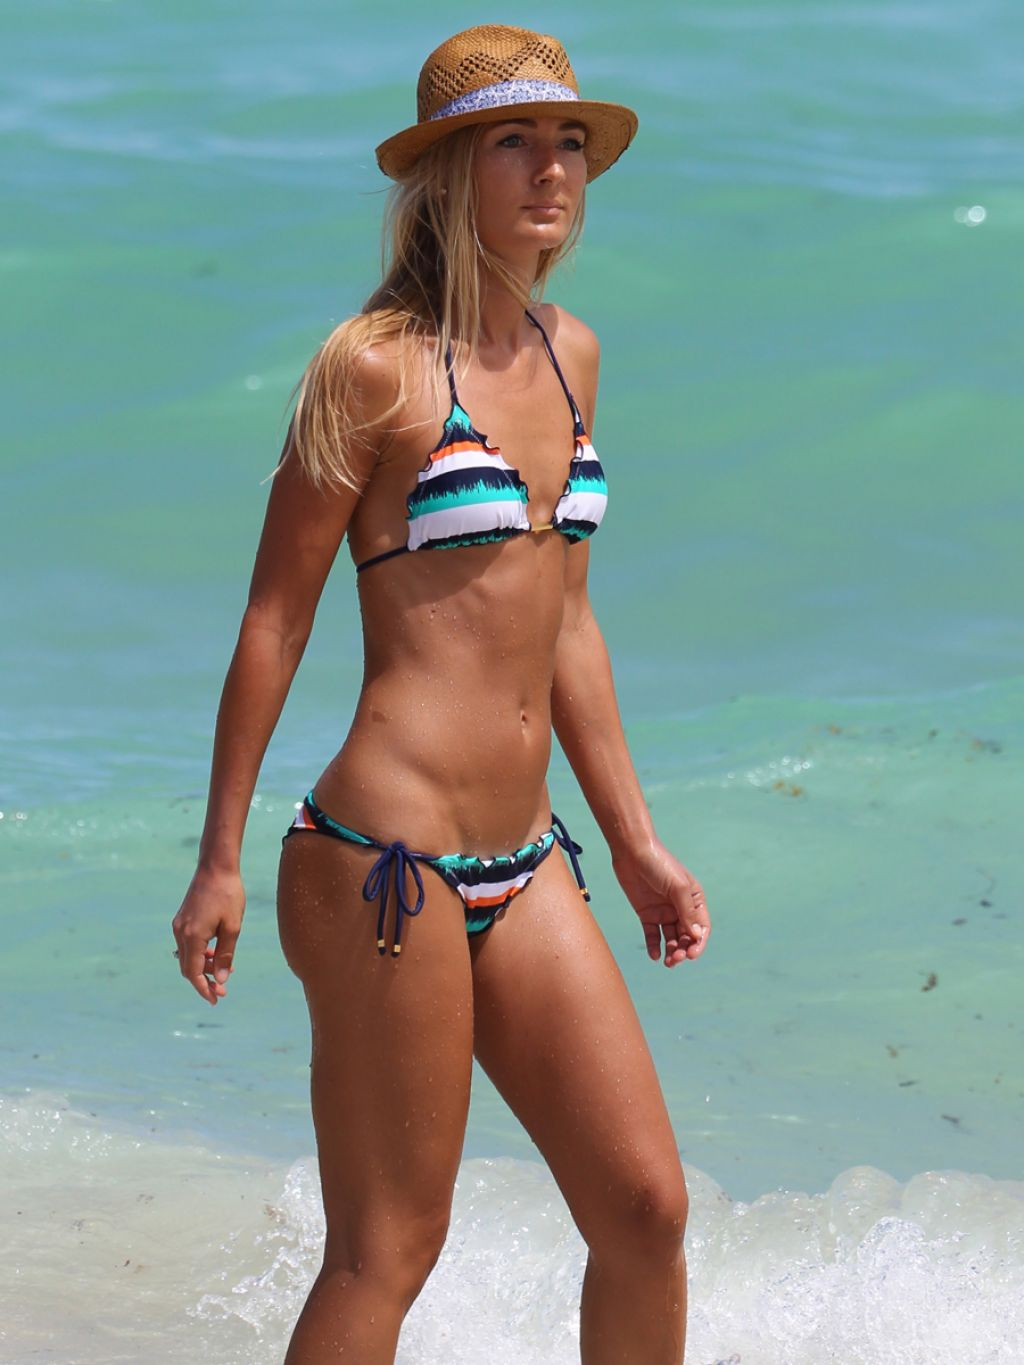 Petra Benova Bikini Candids in Miami - September 2014